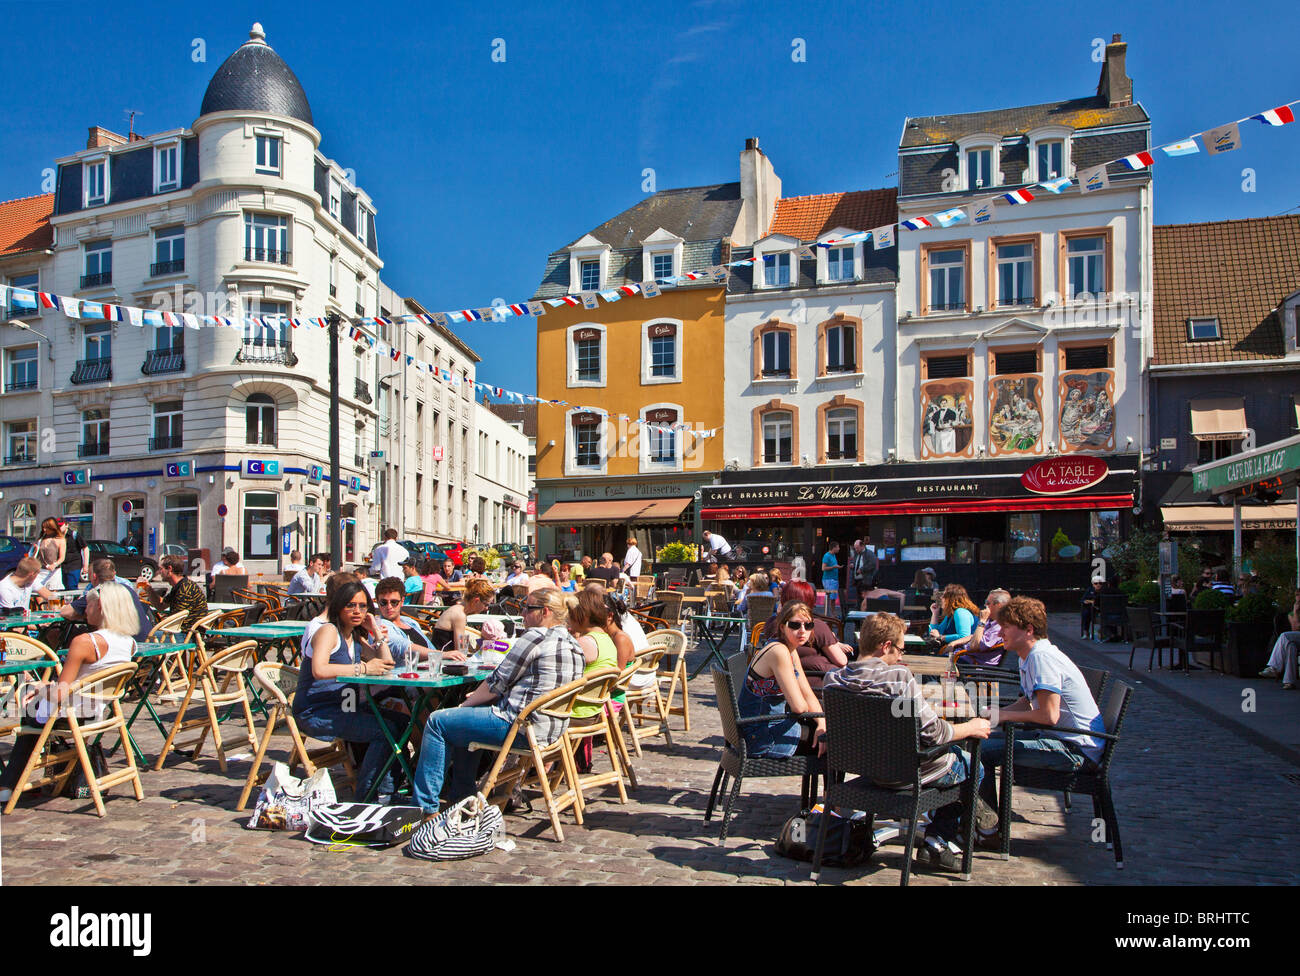 People enjoying the sunshine and chatting at an outdoor cafe in the Place Dalton in Boulogne, France - Stock Image